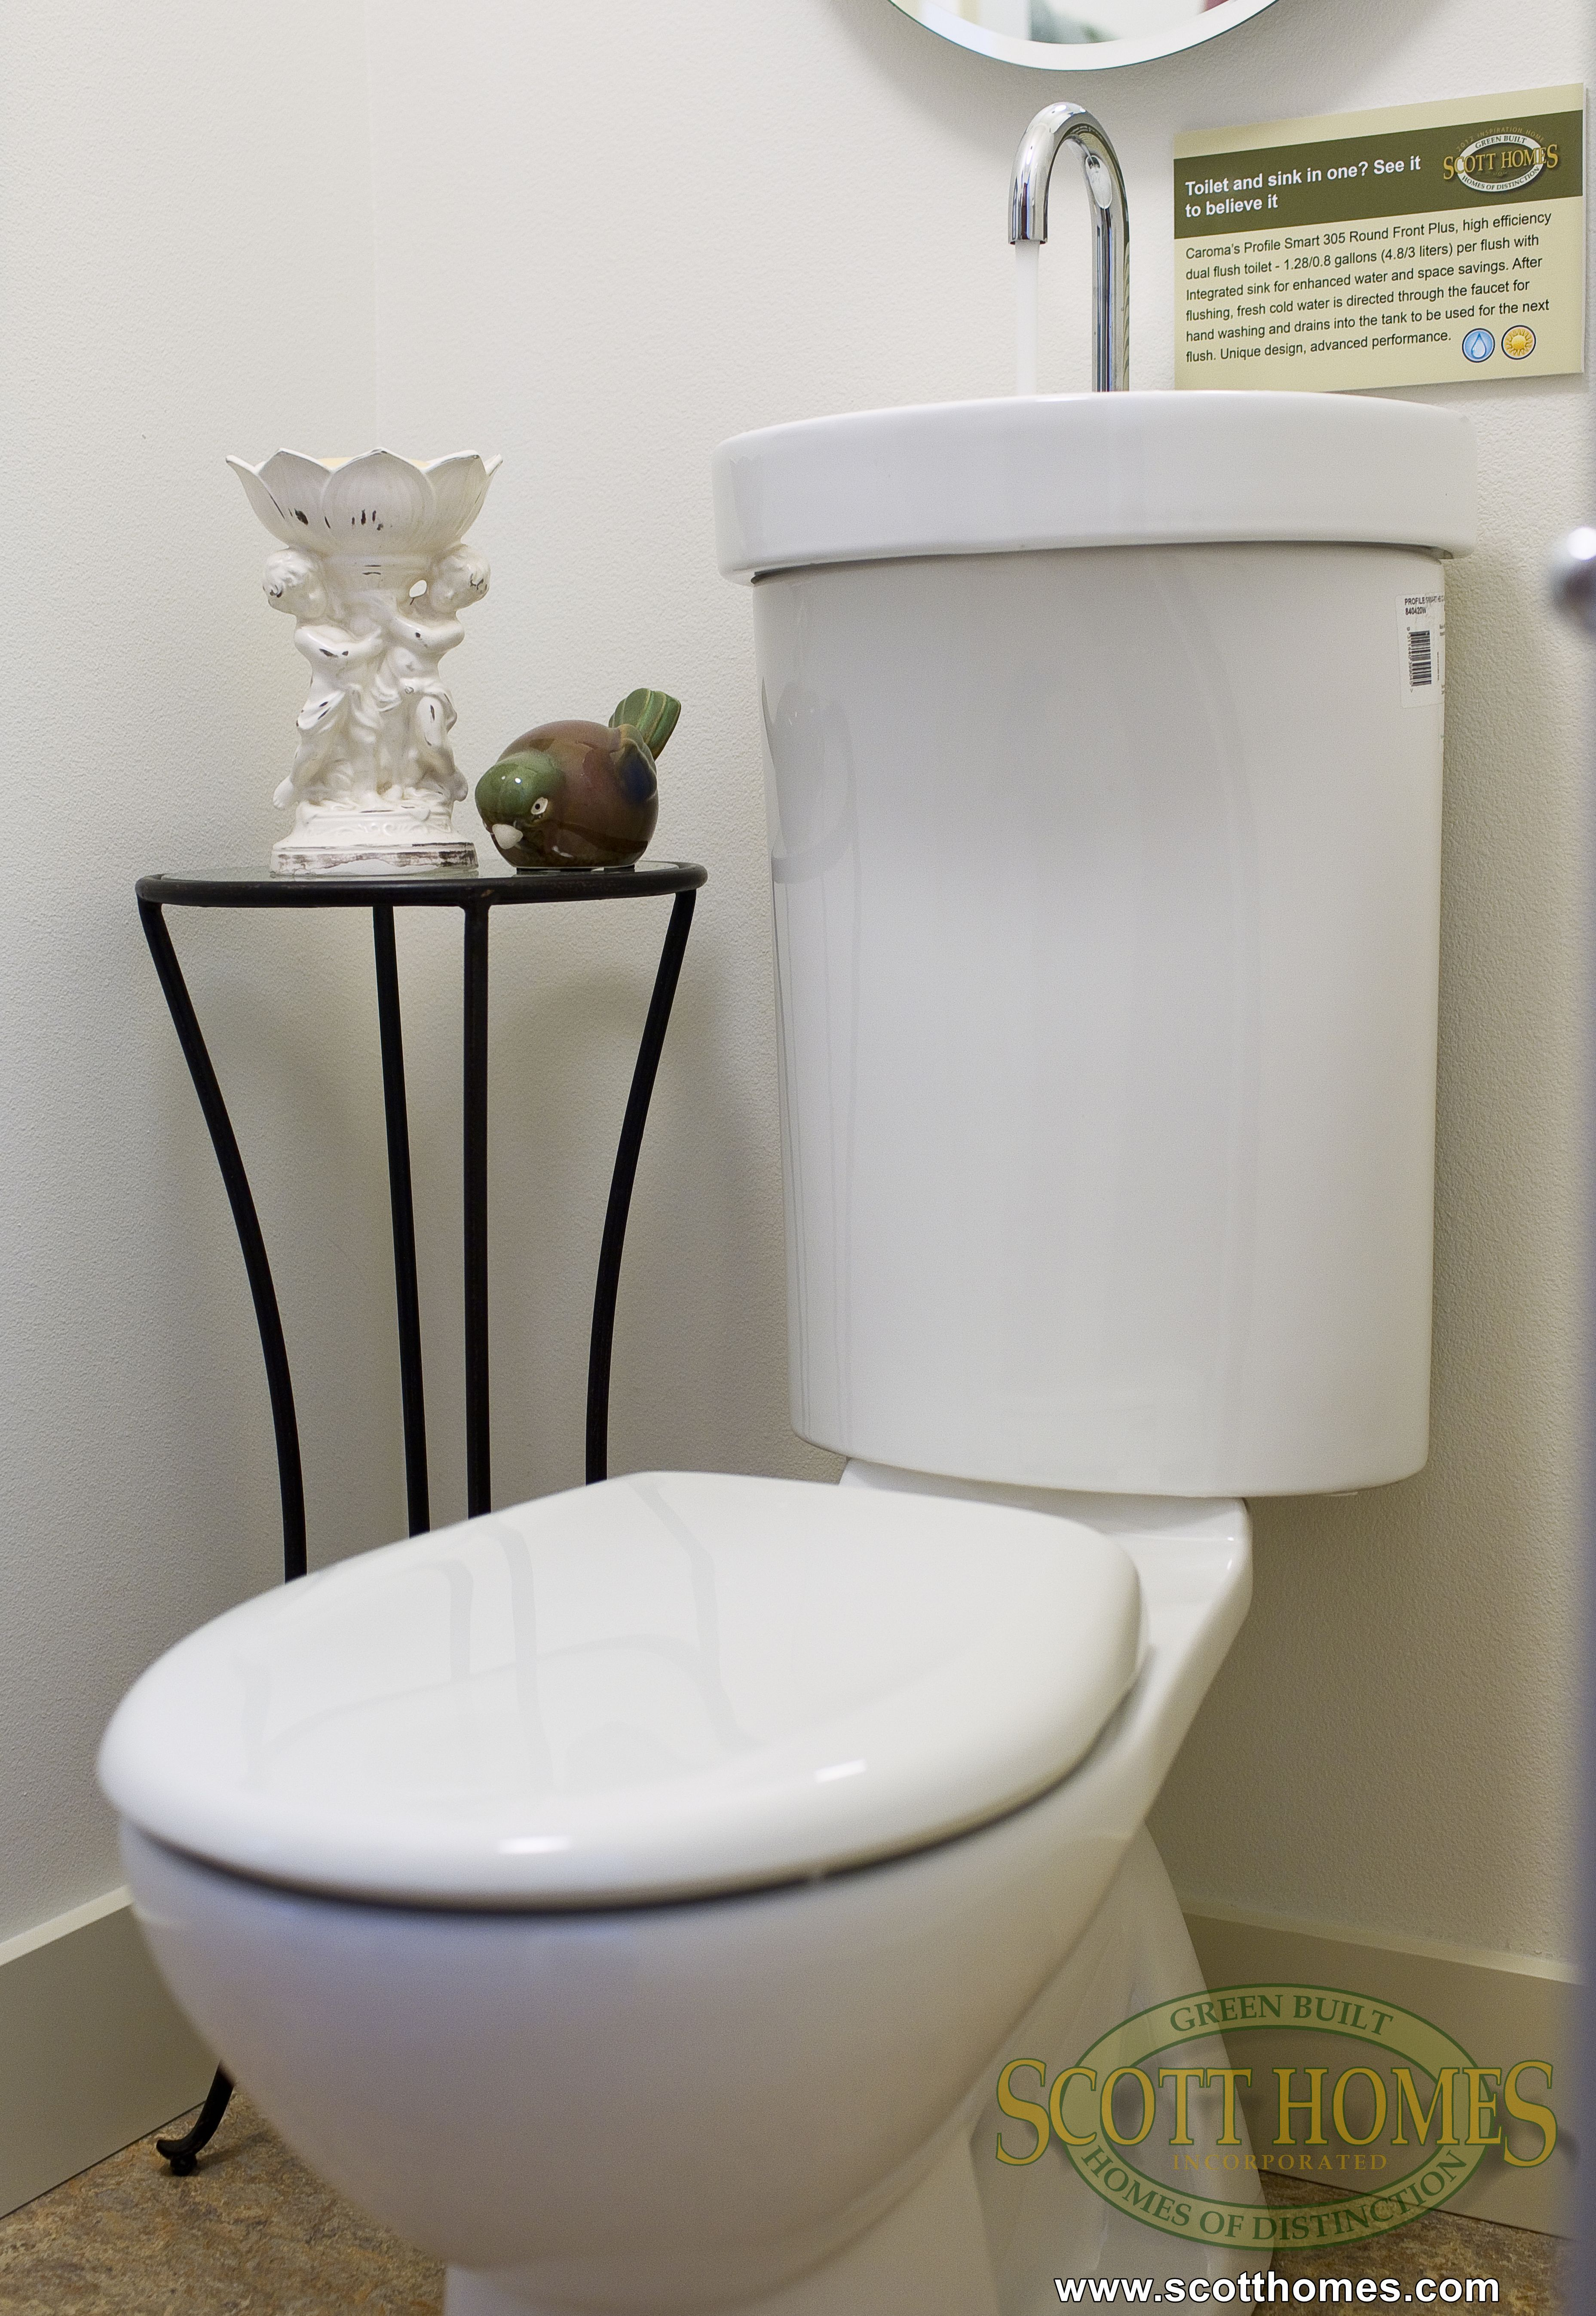 This Two In One Toilet/sink Design Lends Utility To Small Spaces.